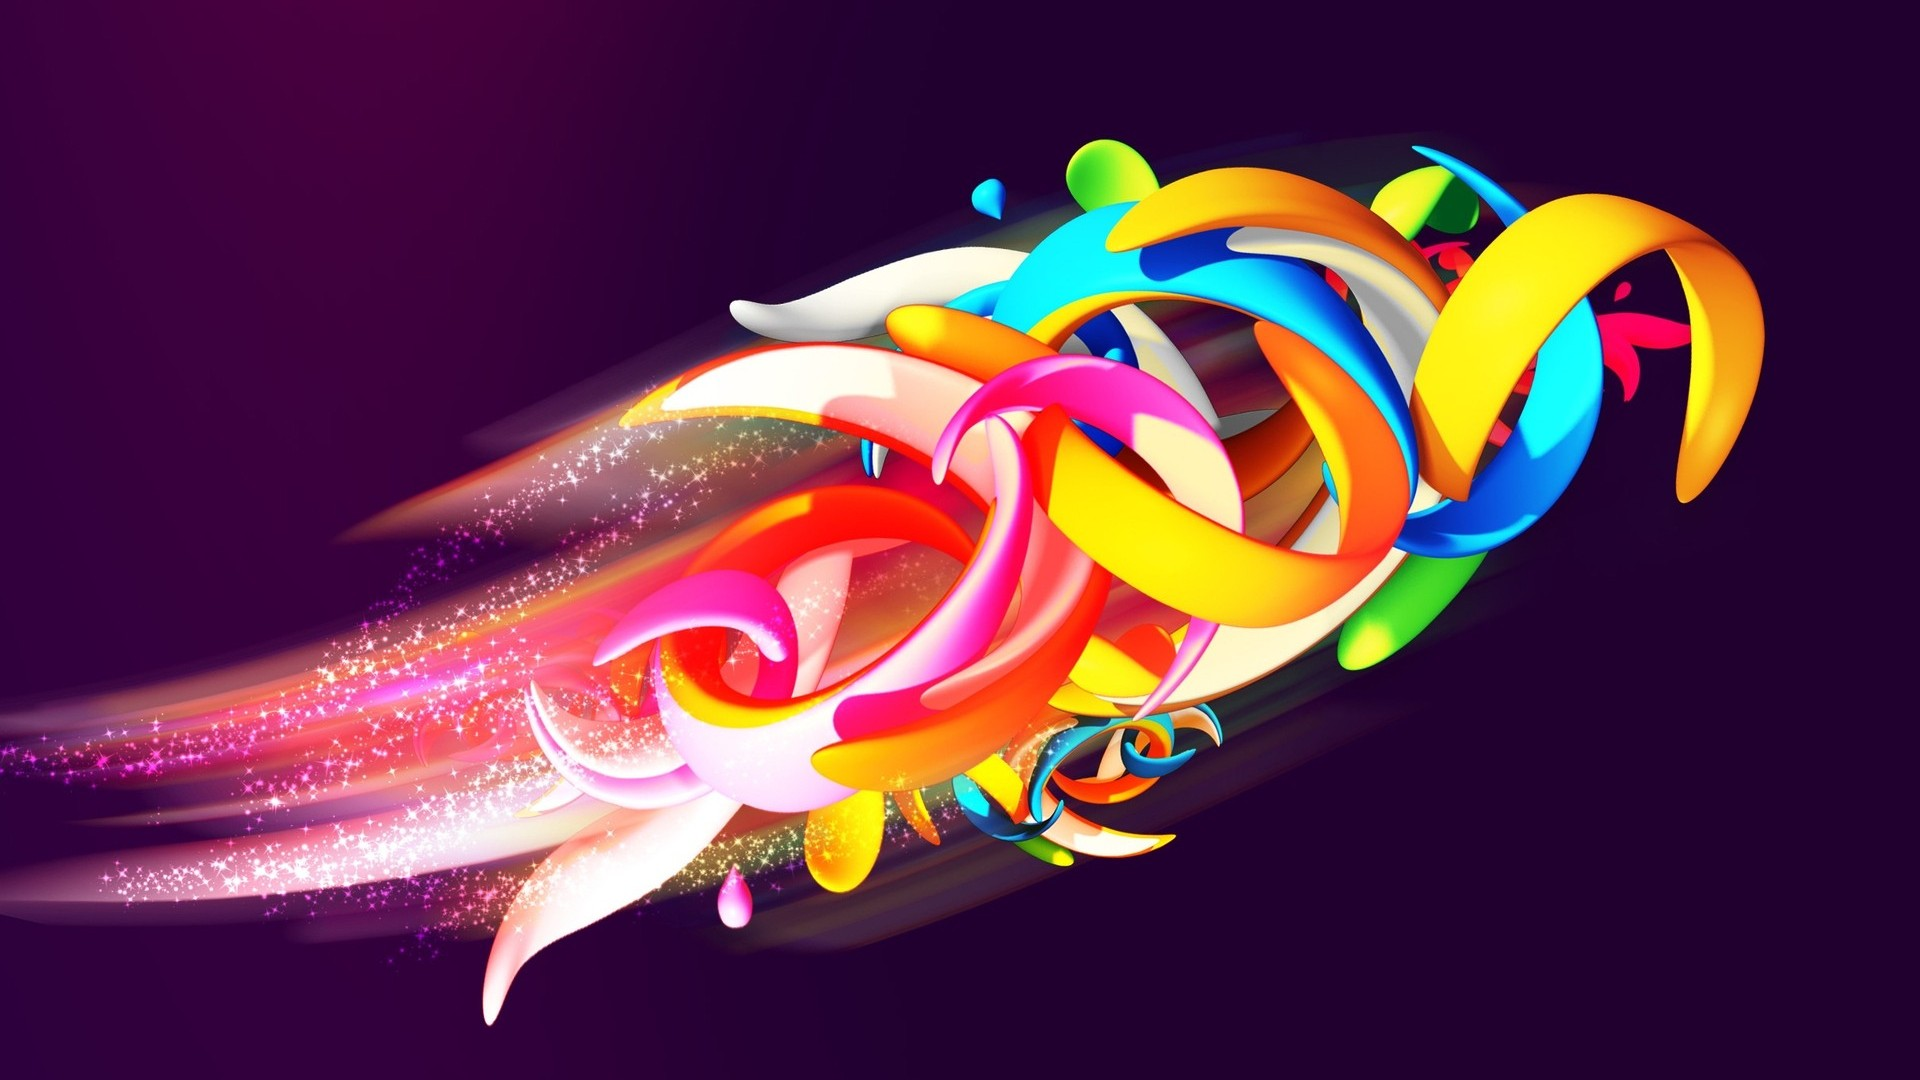 Colorful Wallpapers For Desktop Group (80+)